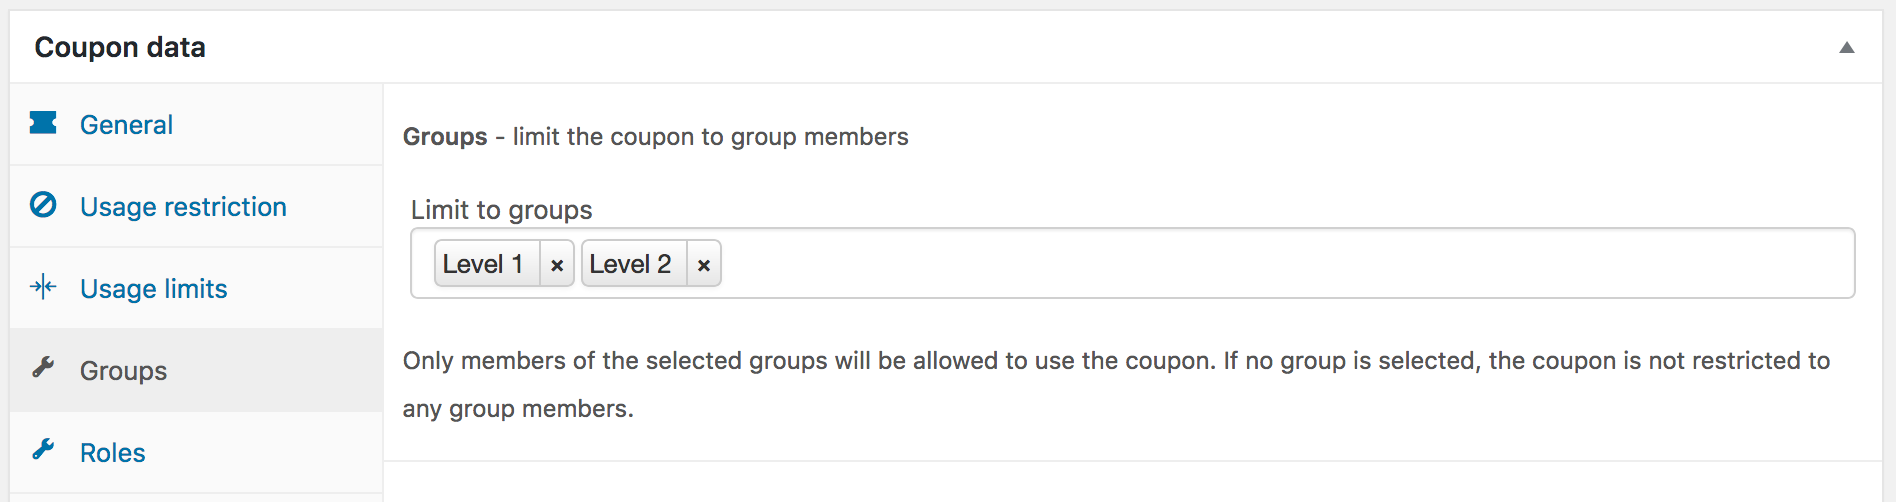 Showing settings for a coupon restricted to two groups